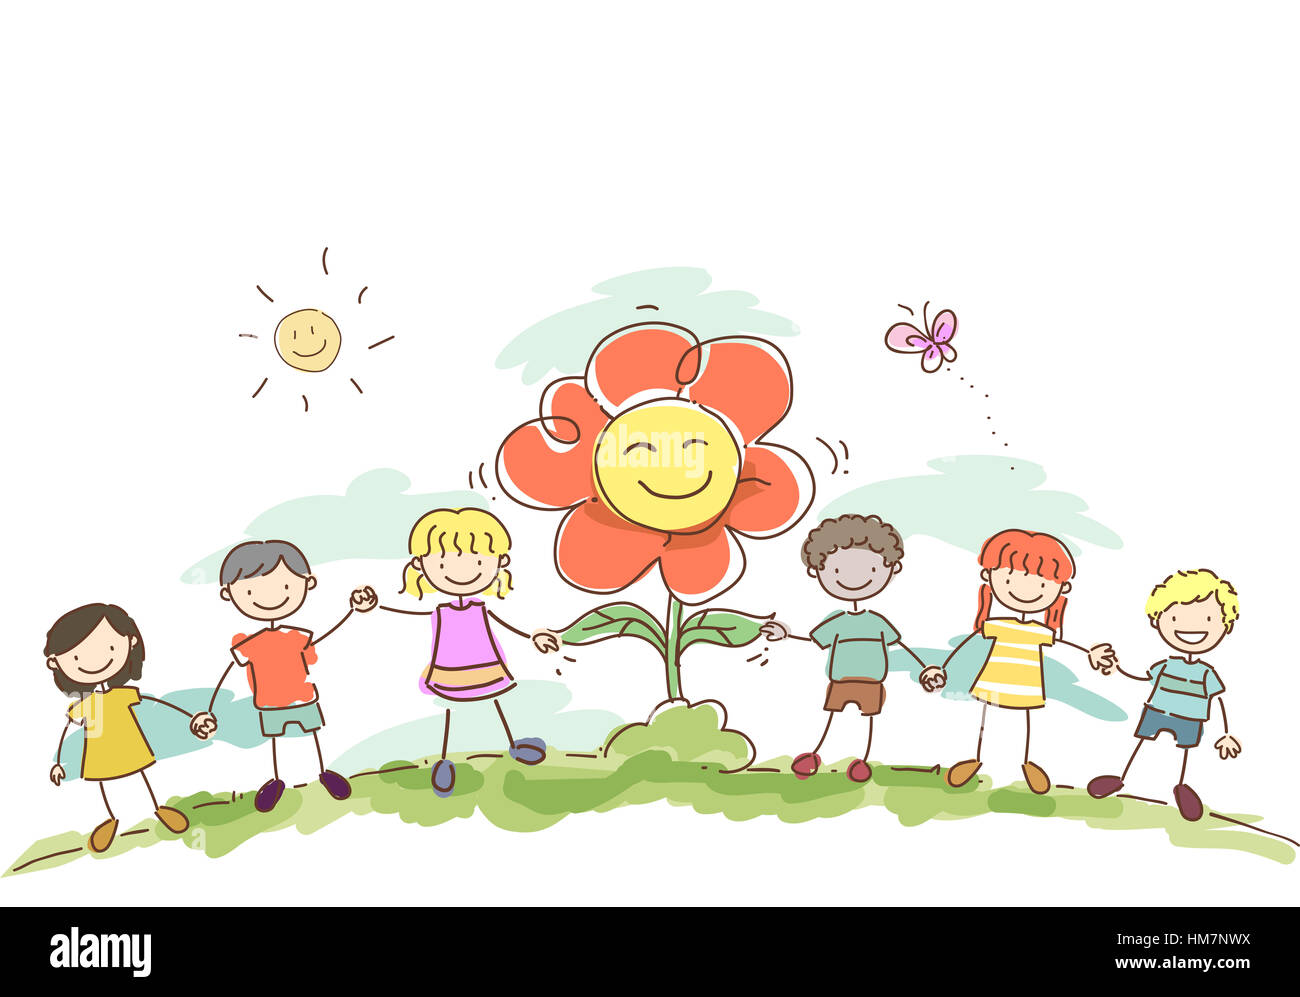 stickman illustration of kids holding hands with a giant flower